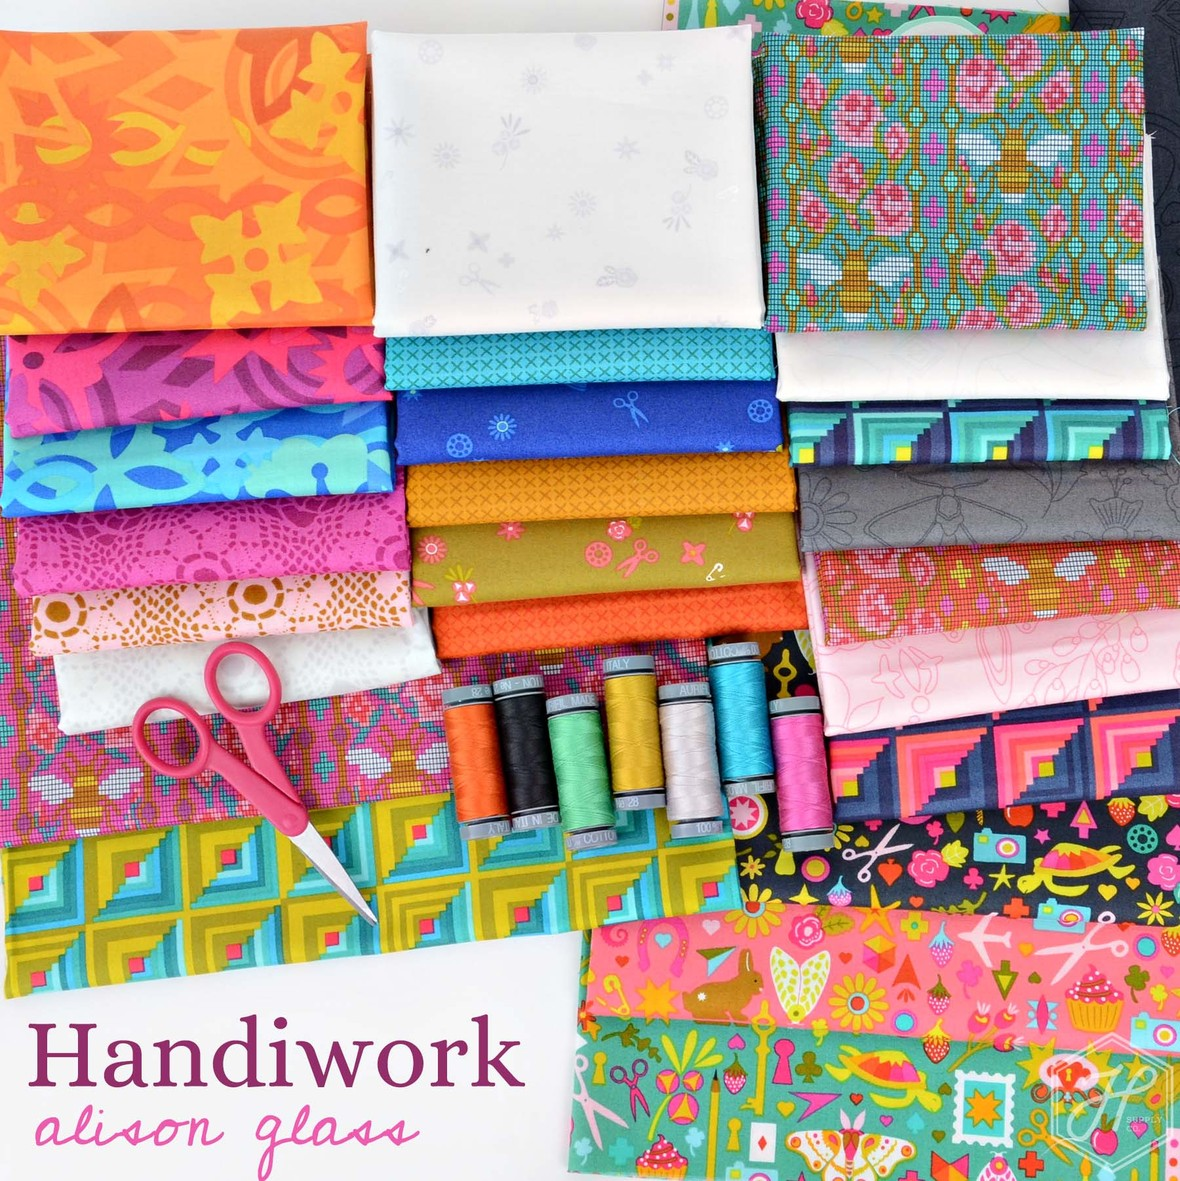 Handiwork Fabric Poster Alison Glass at Hawthorne Supply Co